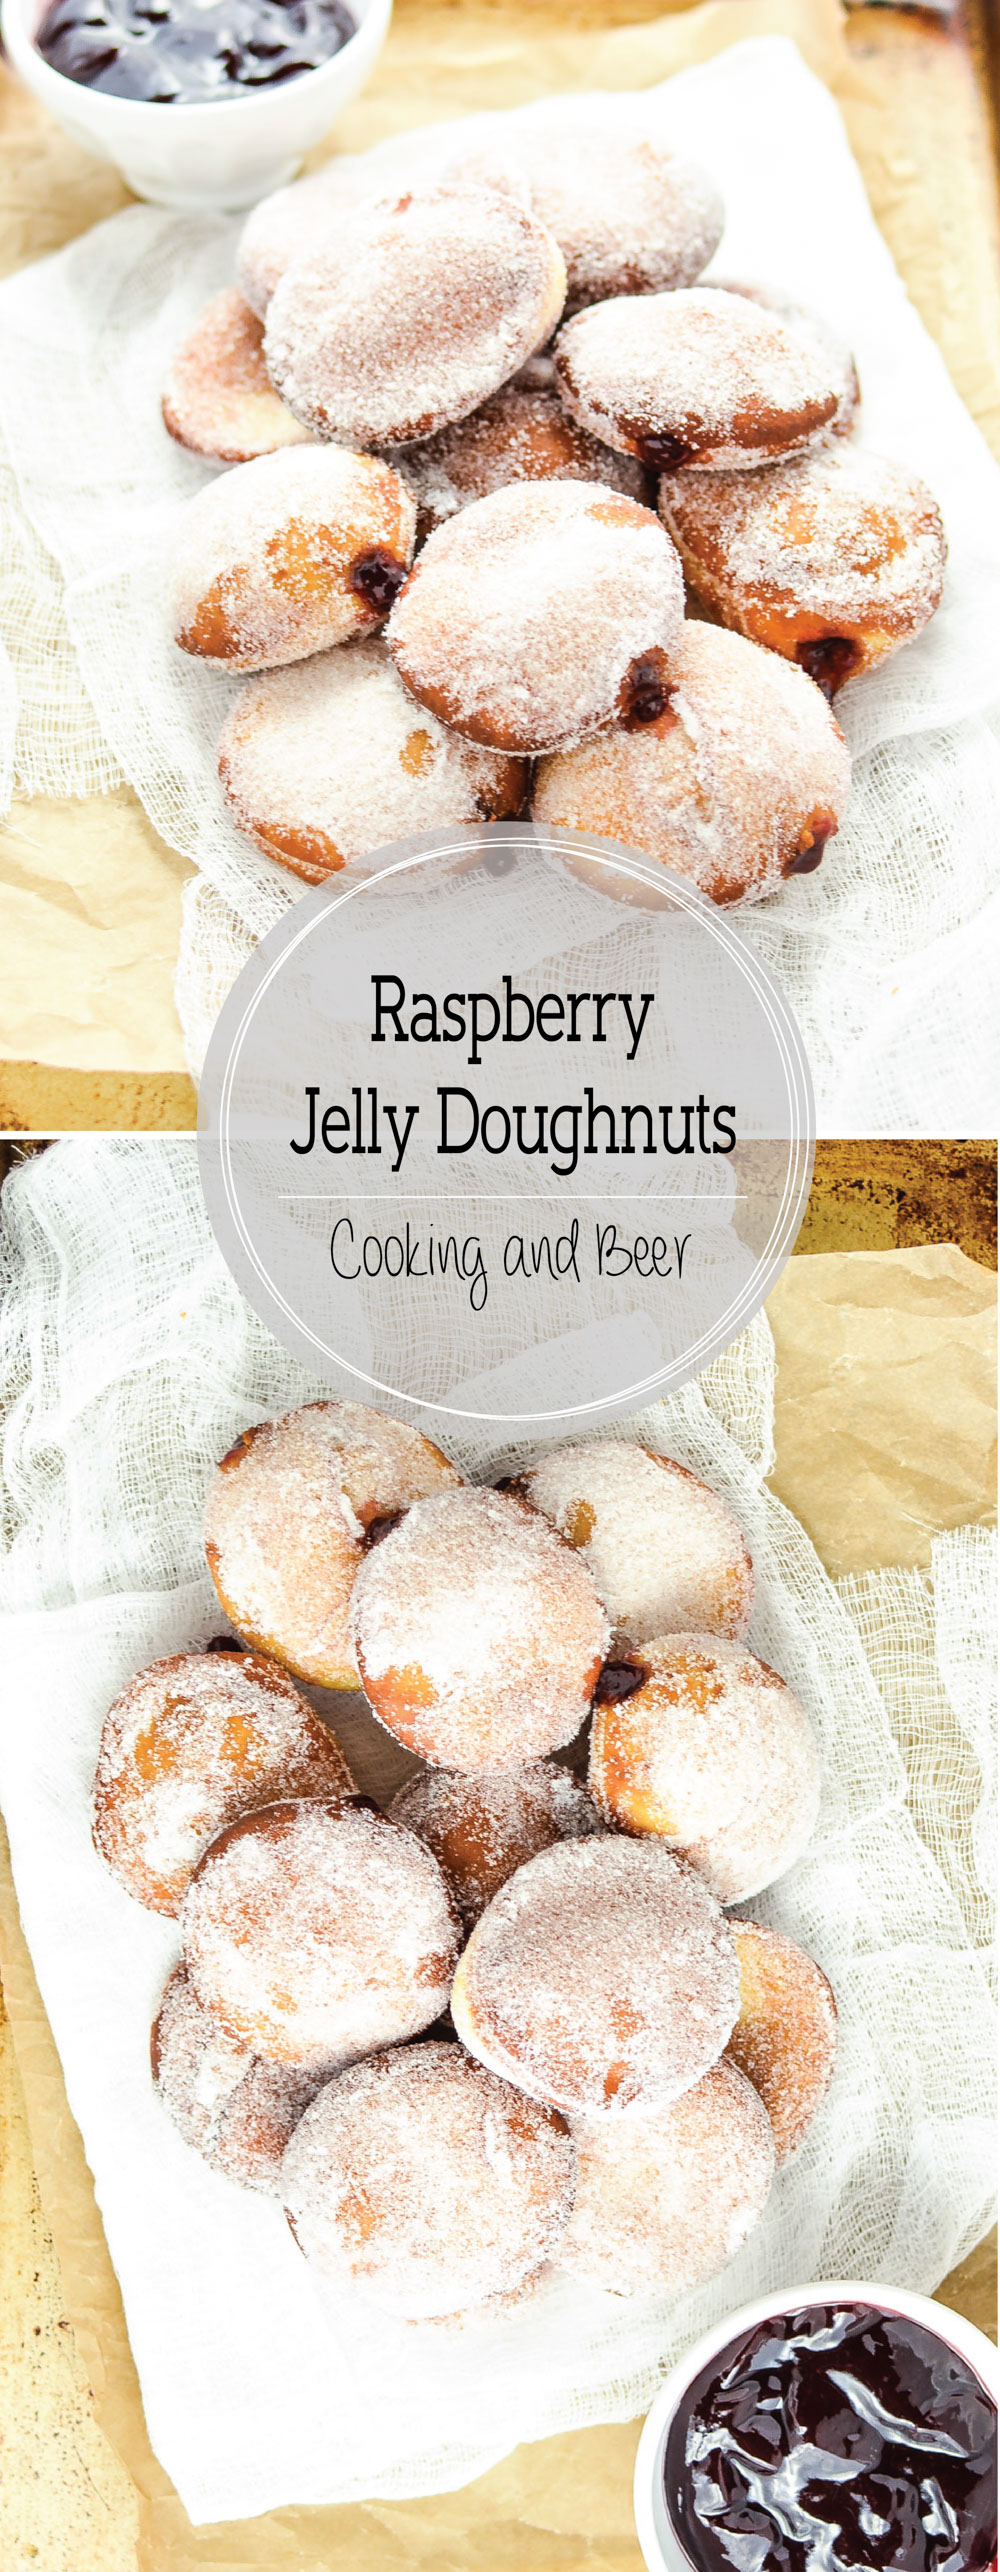 Almond Raspberry Jelly Doughnuts are the perfect sweet treat for breakfast or brunch this spring!